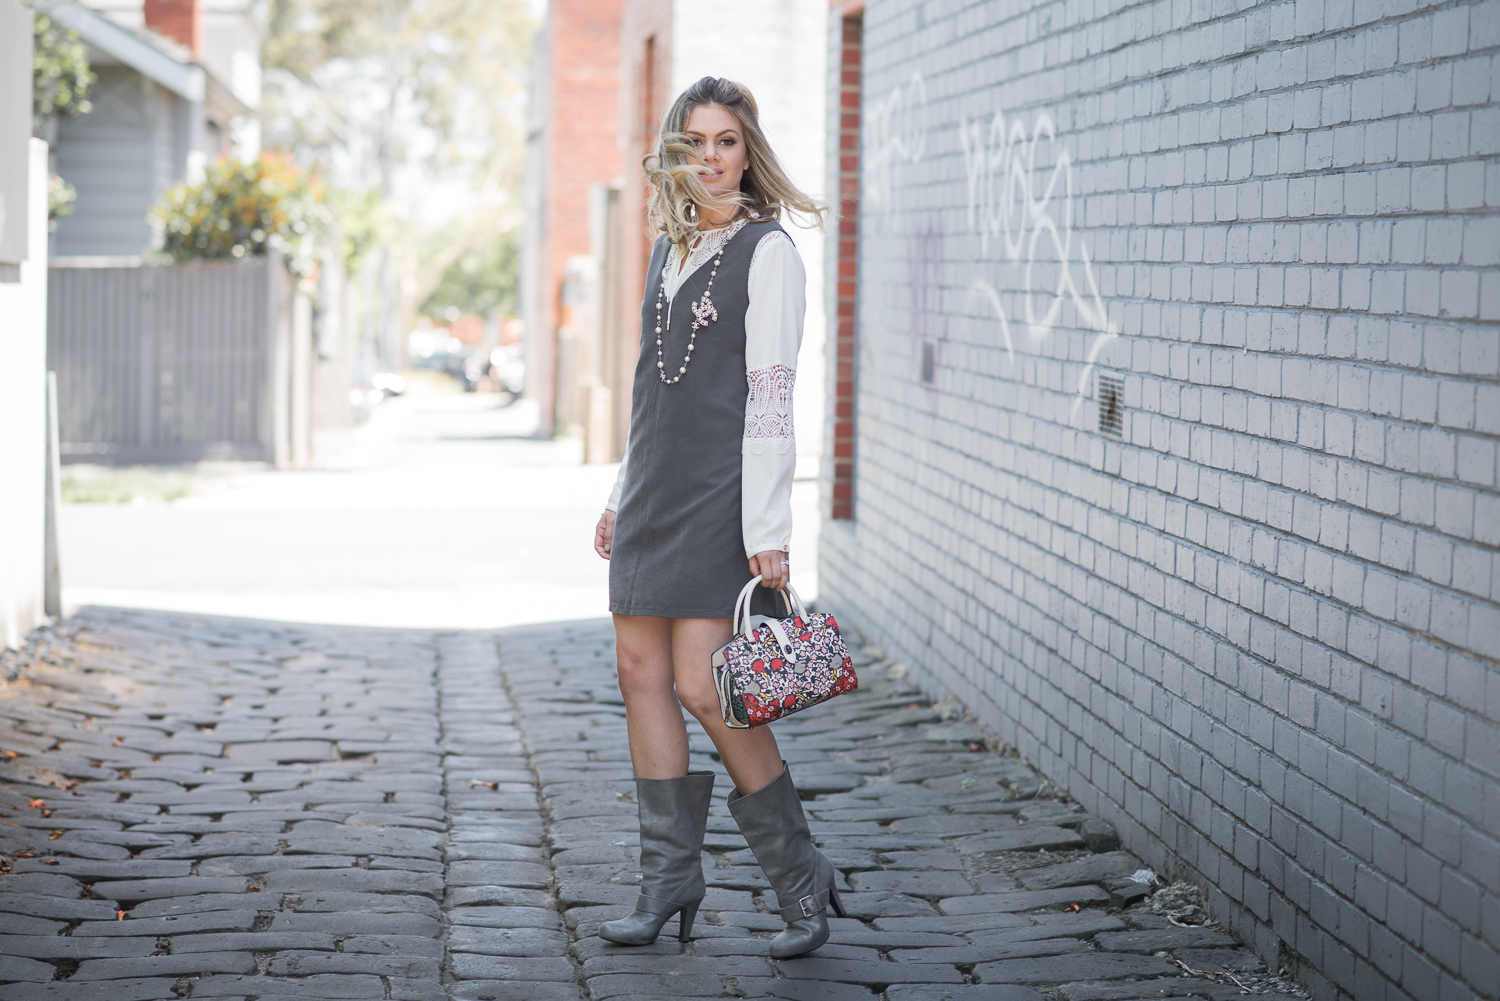 melbourne-street-style-wwkd_0029